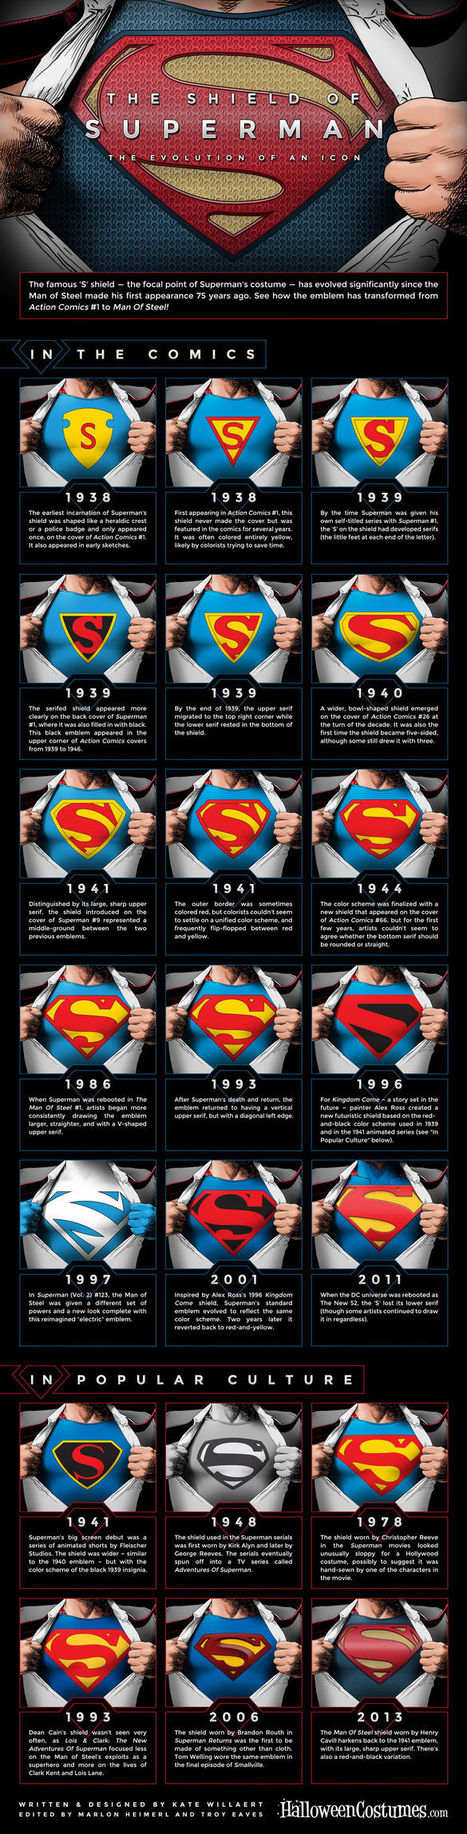 Infographic: The Evolution of the Superman Logo From 1938 To Now | The Creative Commons | Scoop.it